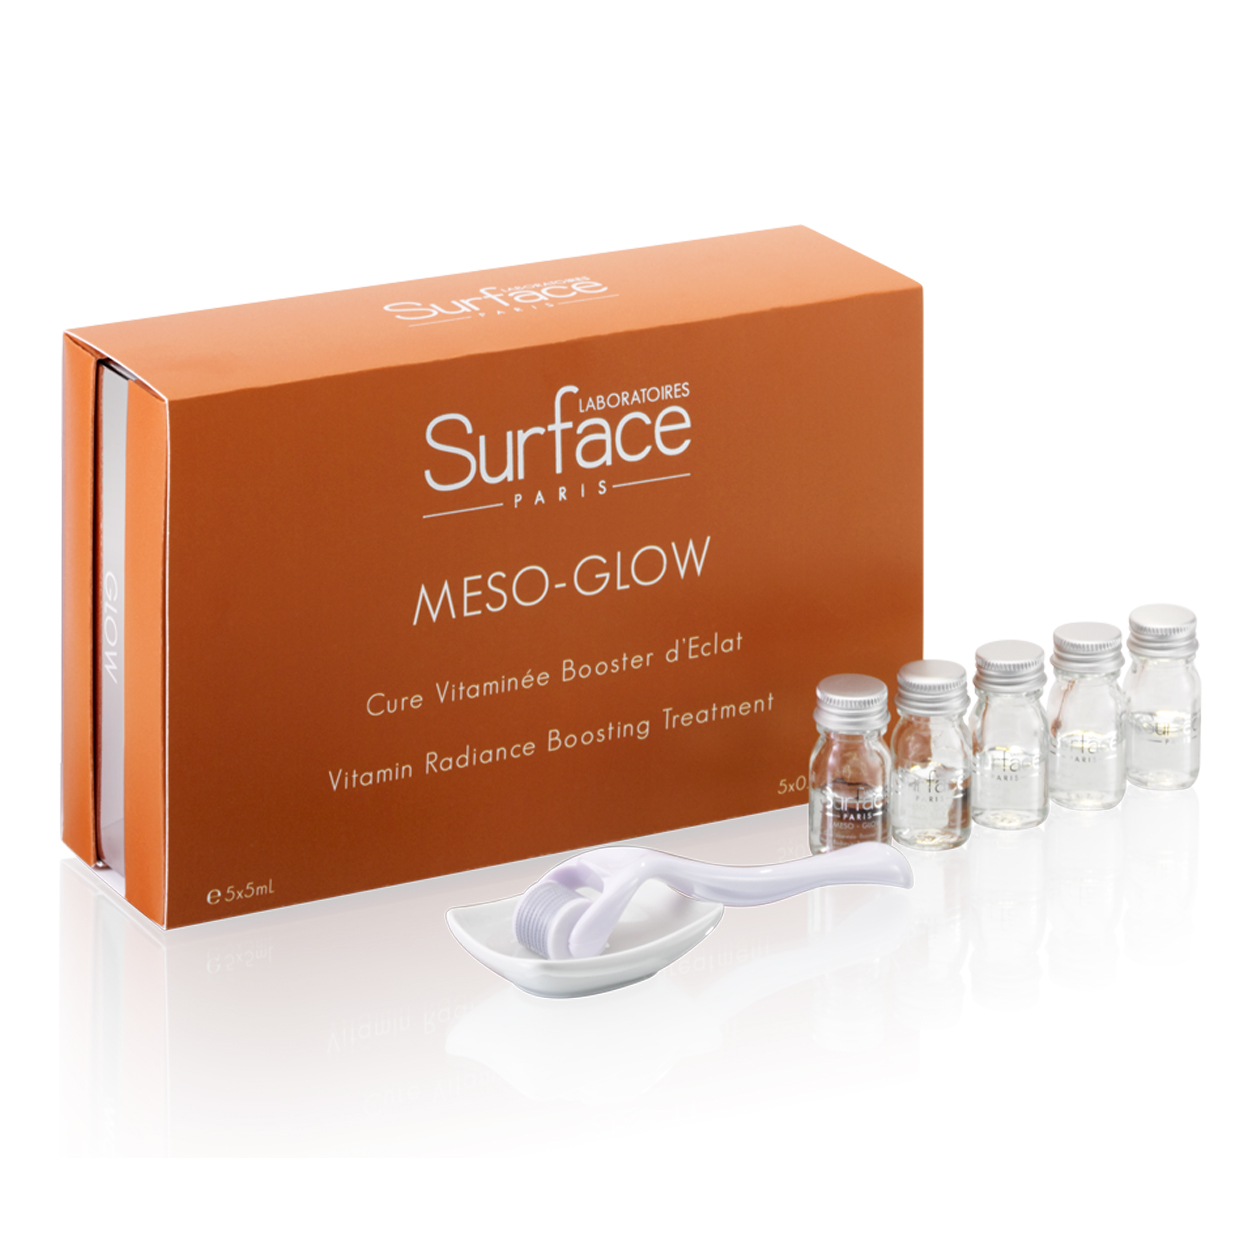 At-Home Mesotherapy - MESO-GLOW by Laboratoires Surface-Paris